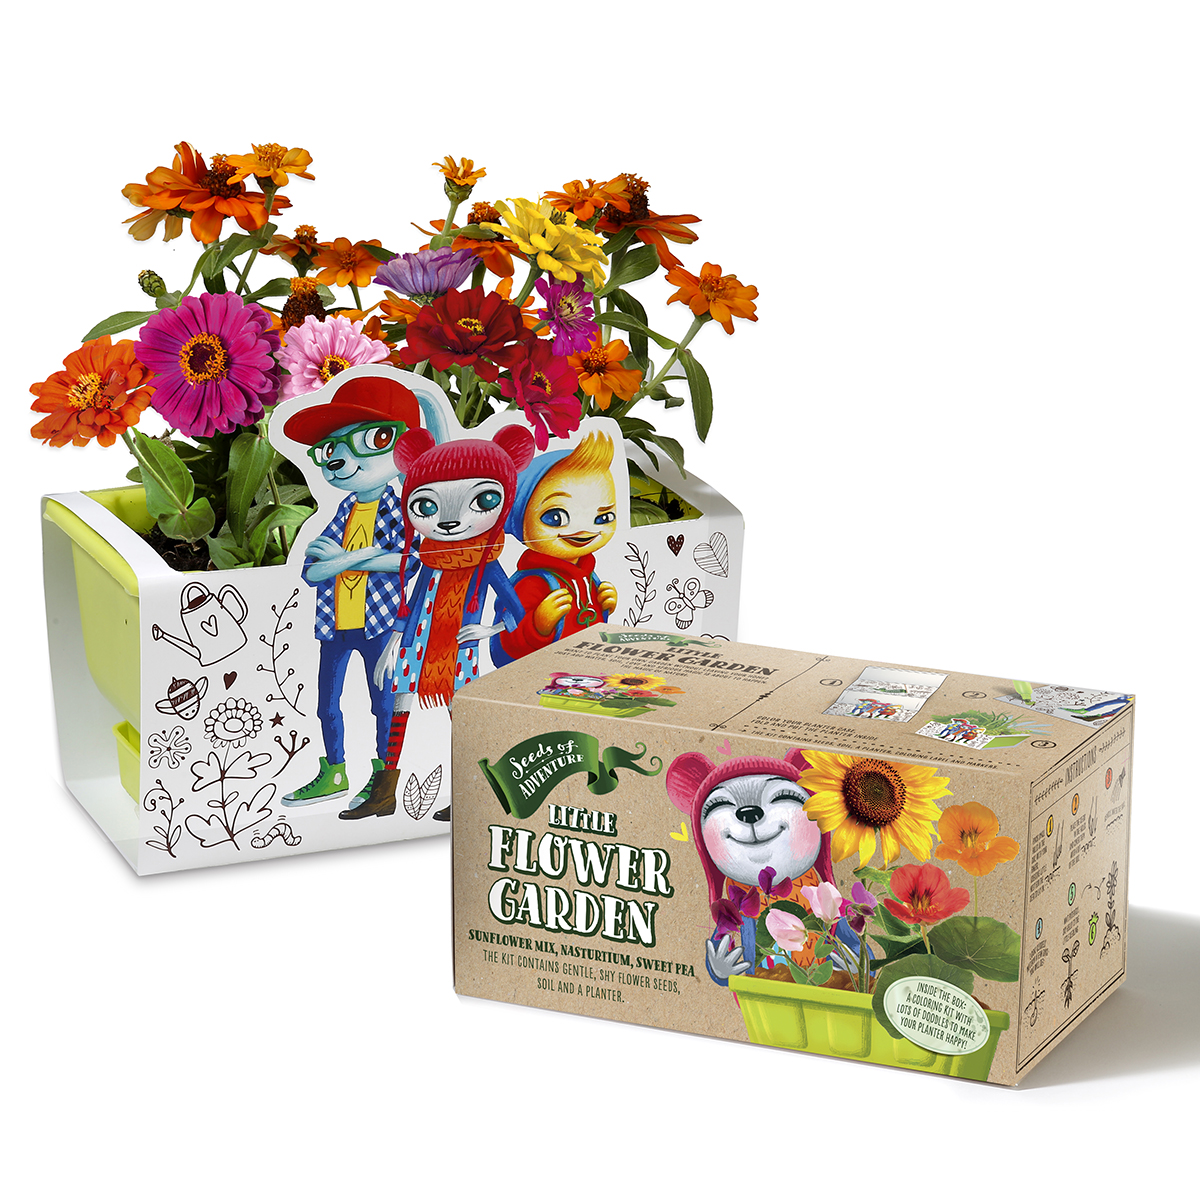 Flowers_planter_and_box